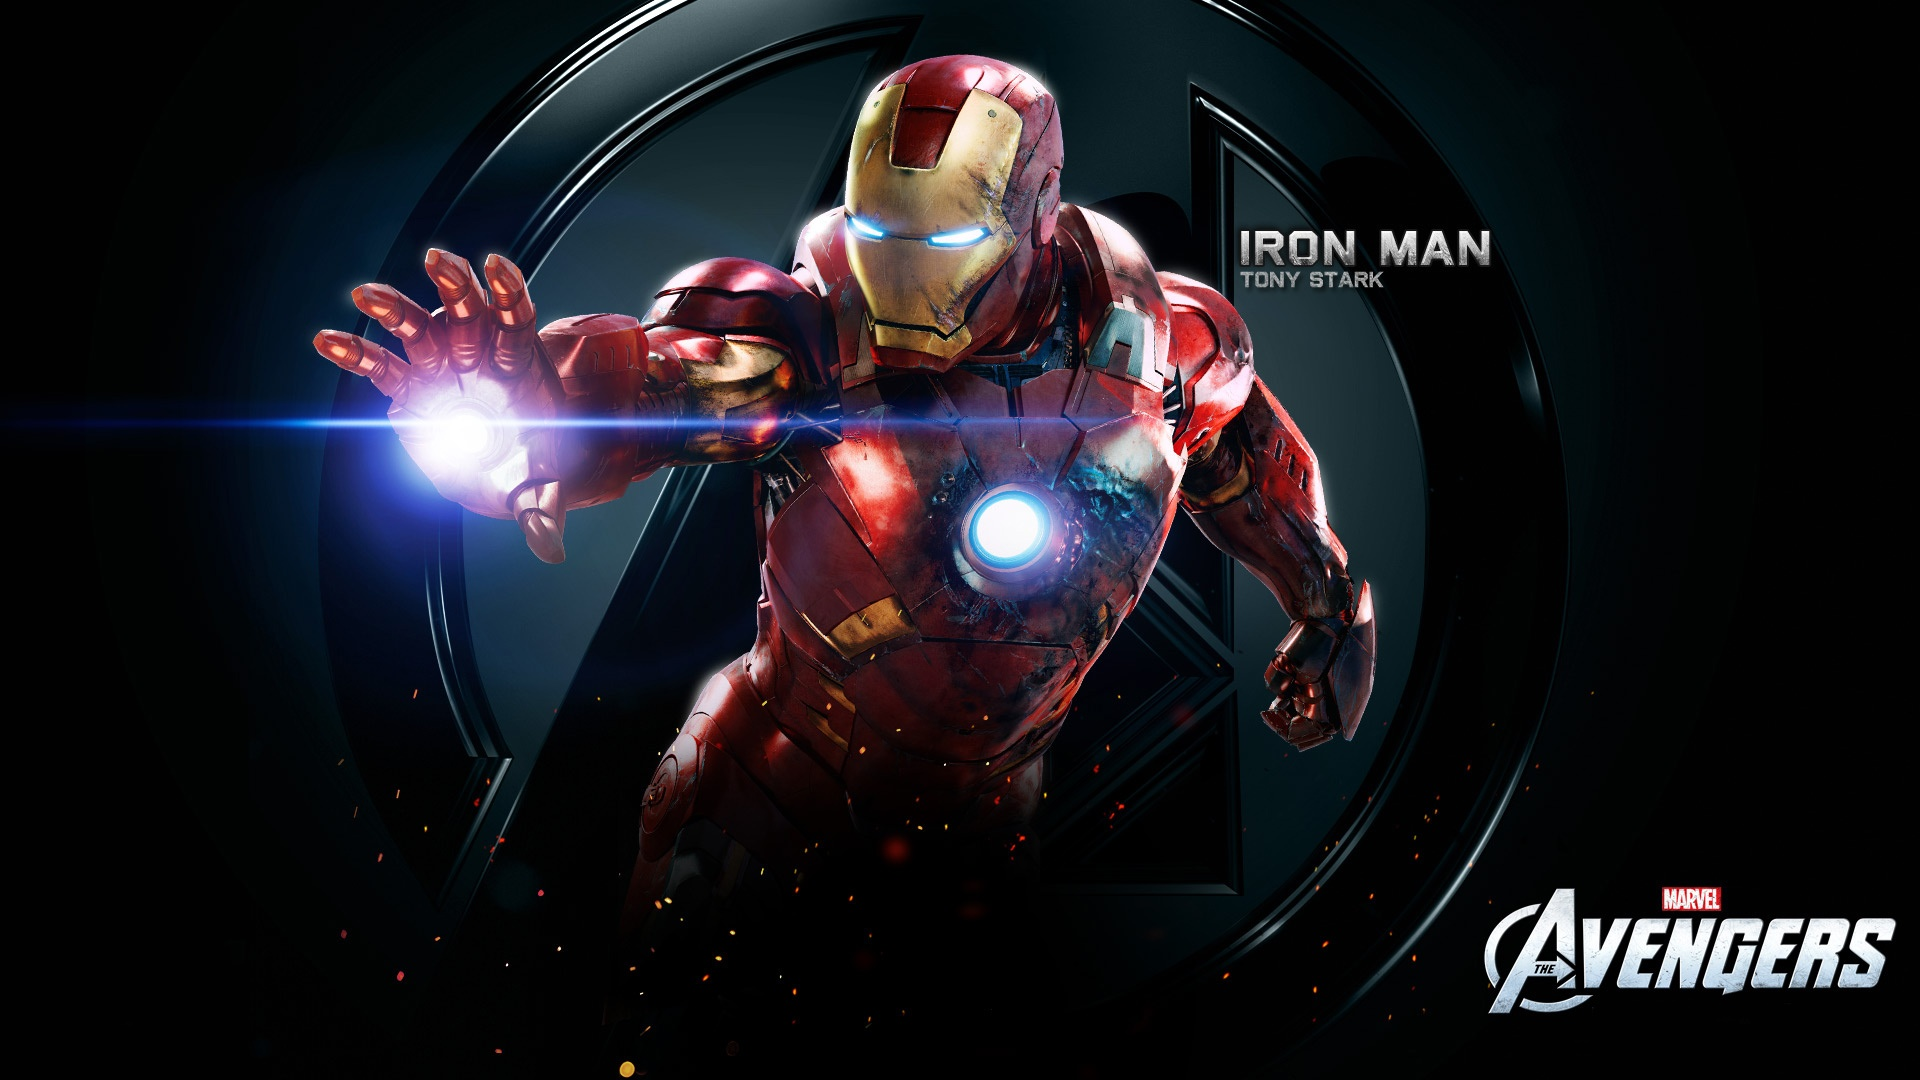 iron man tony stark wallpapers in jpg format for free download